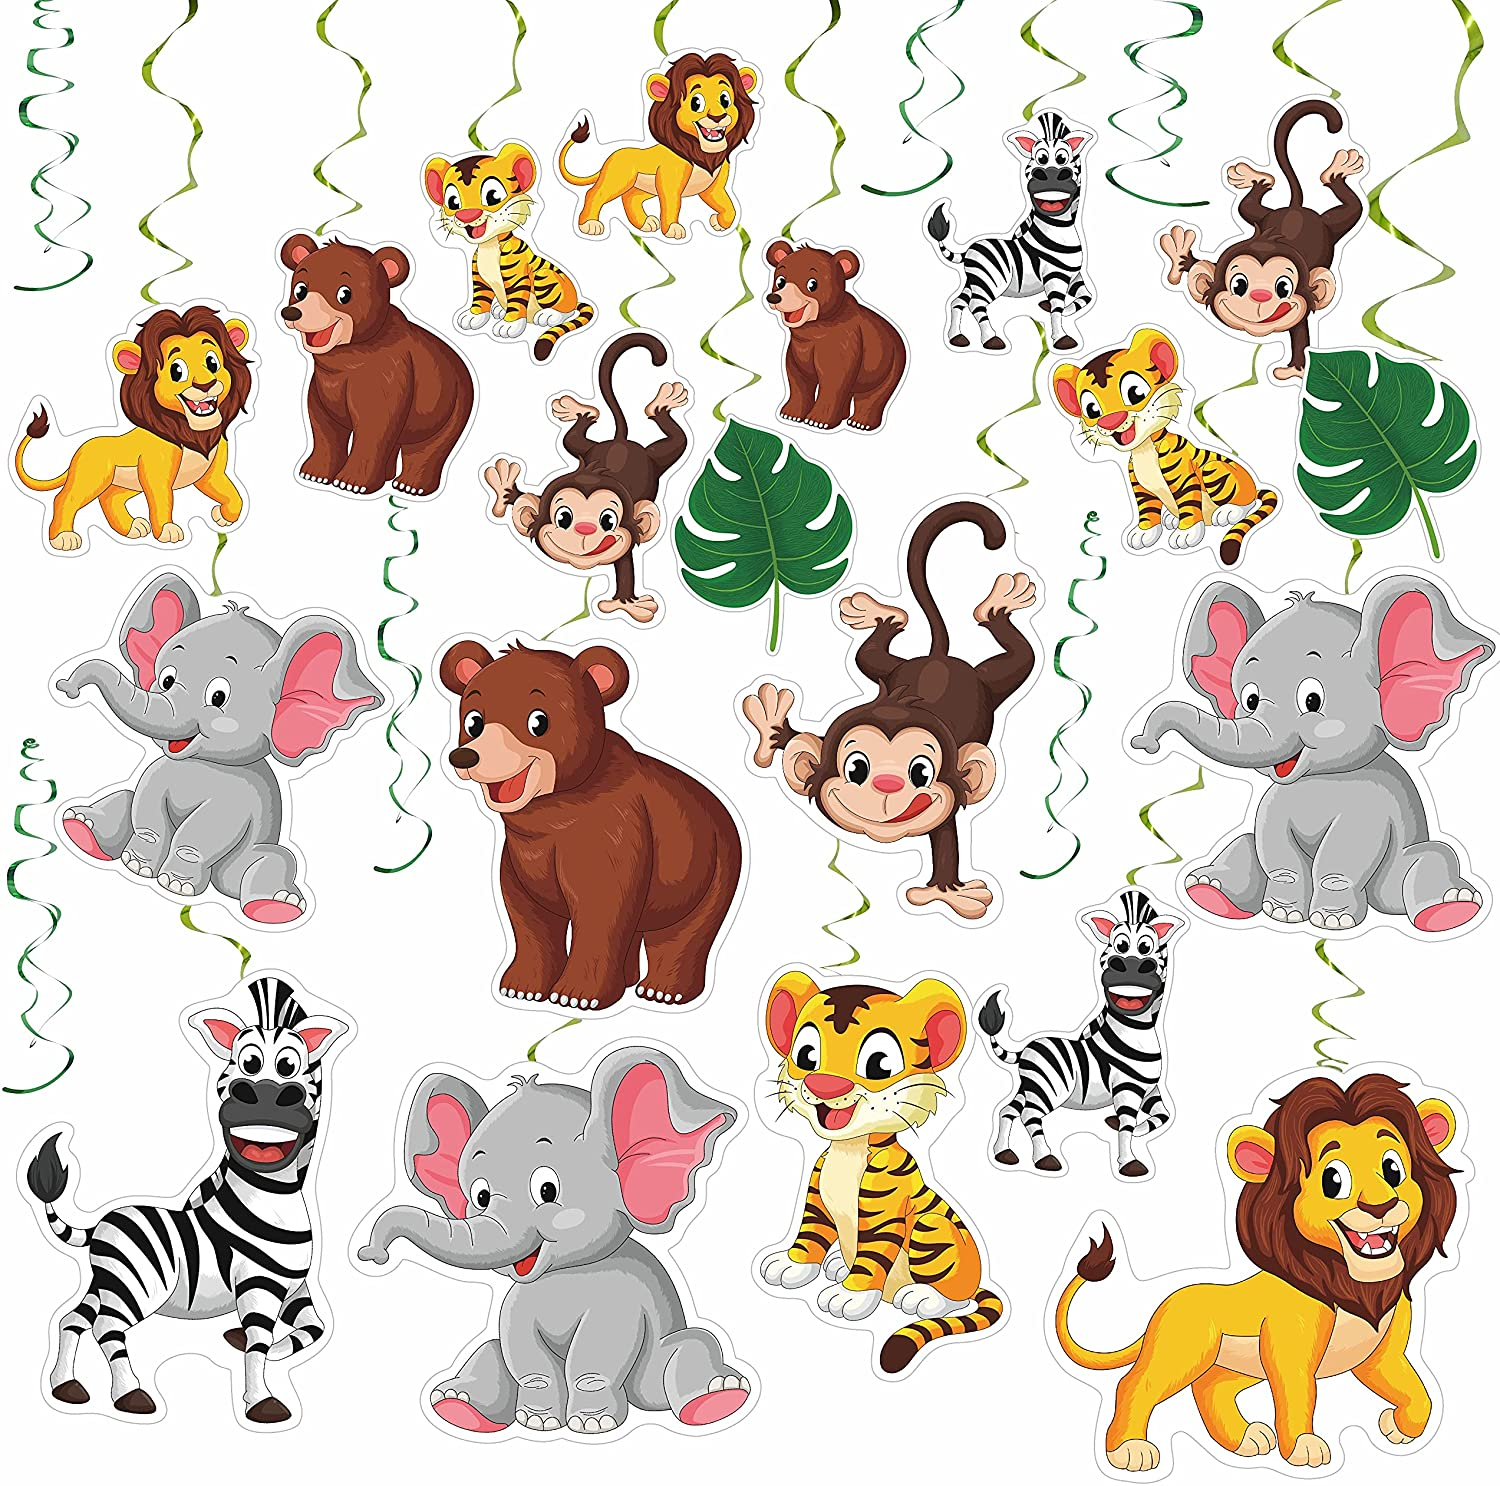 20 Pieces Jungle Animal Party Swirls Decorations Ceiling Hanging Animal Theme Party Supplies for Birthday Baby Shower Decor Event